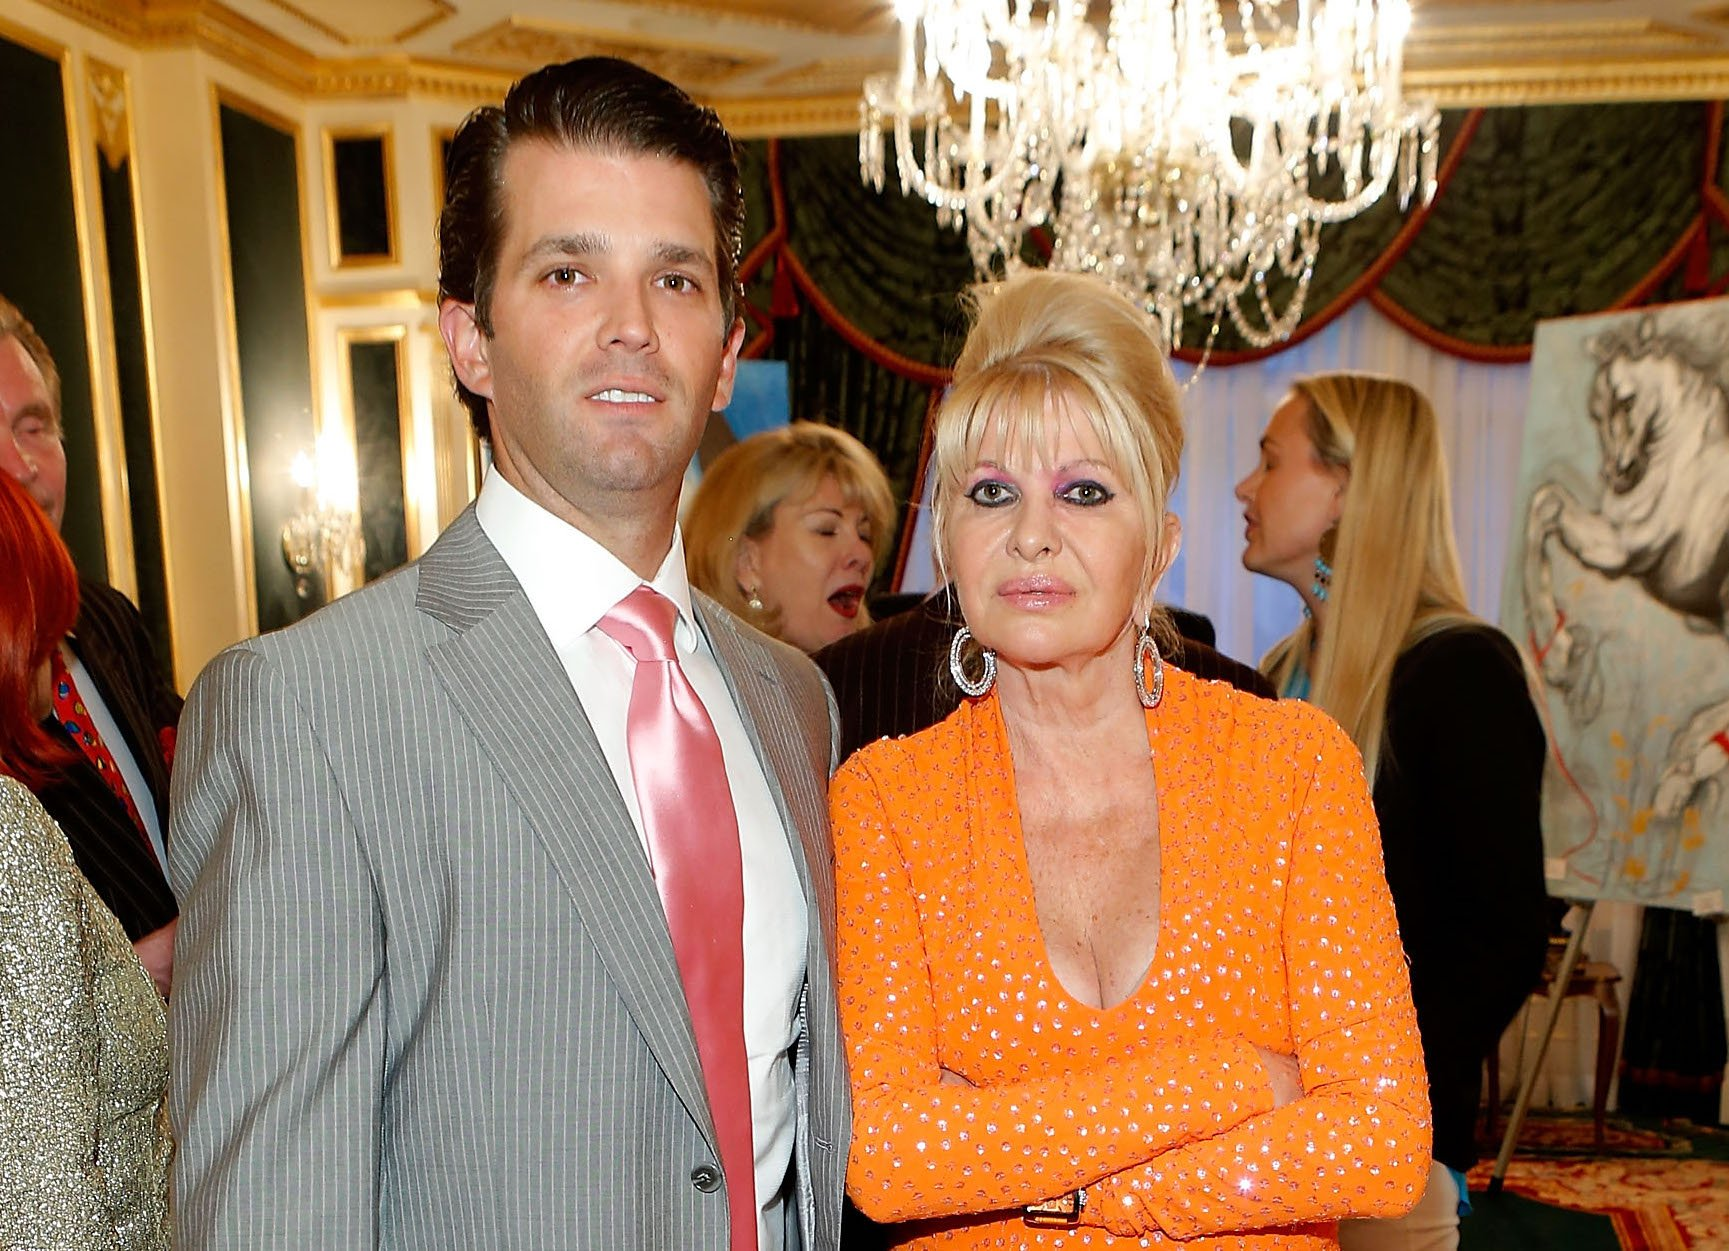 Aubrey O'Day's reported affair with Trump Jr